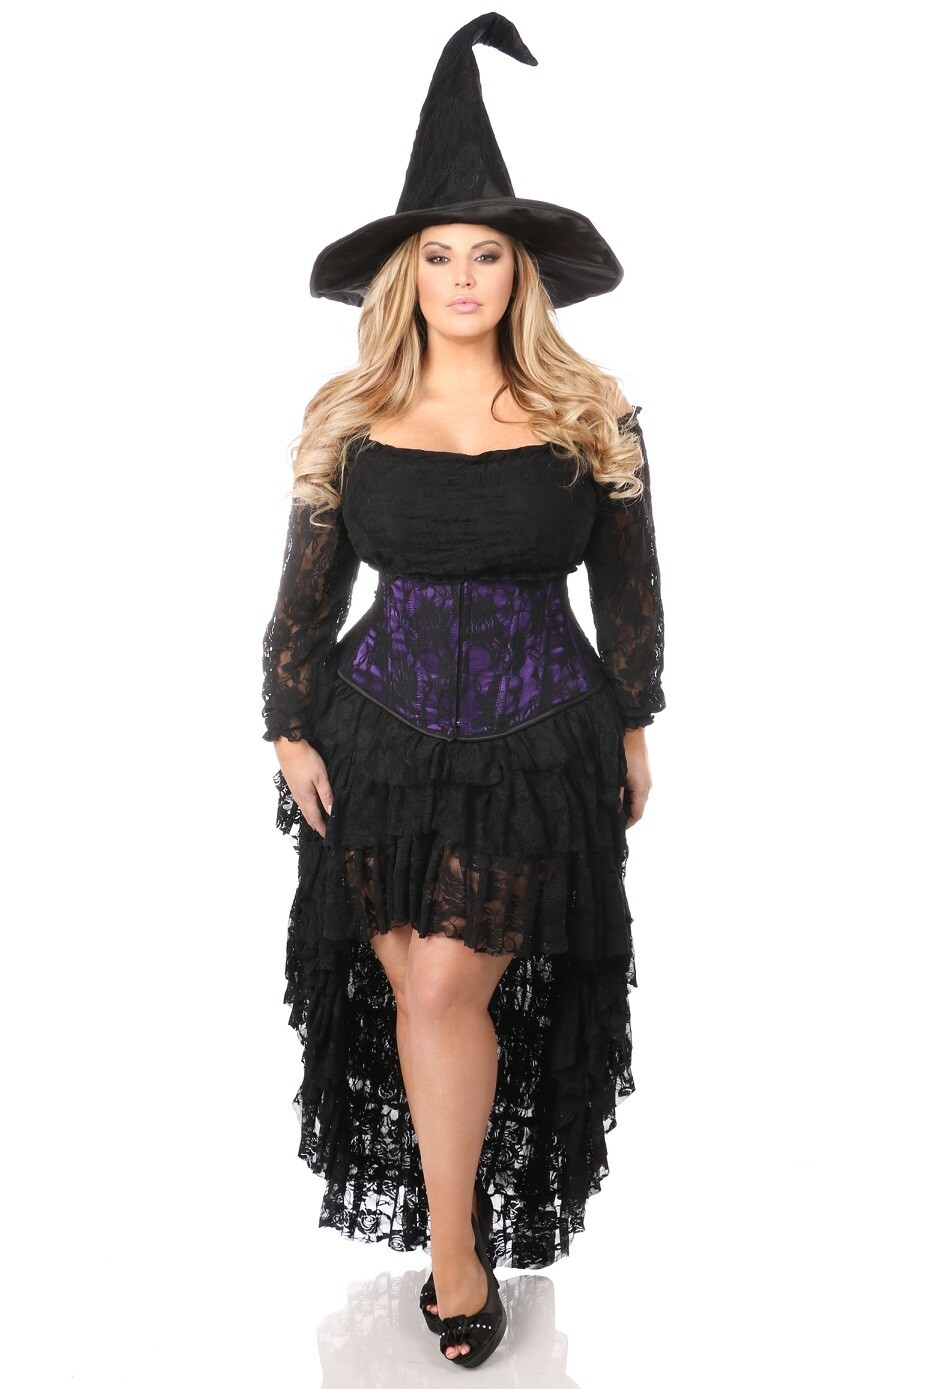 COSTUMES  Witches  4 PC Lace Witch Corset Costume